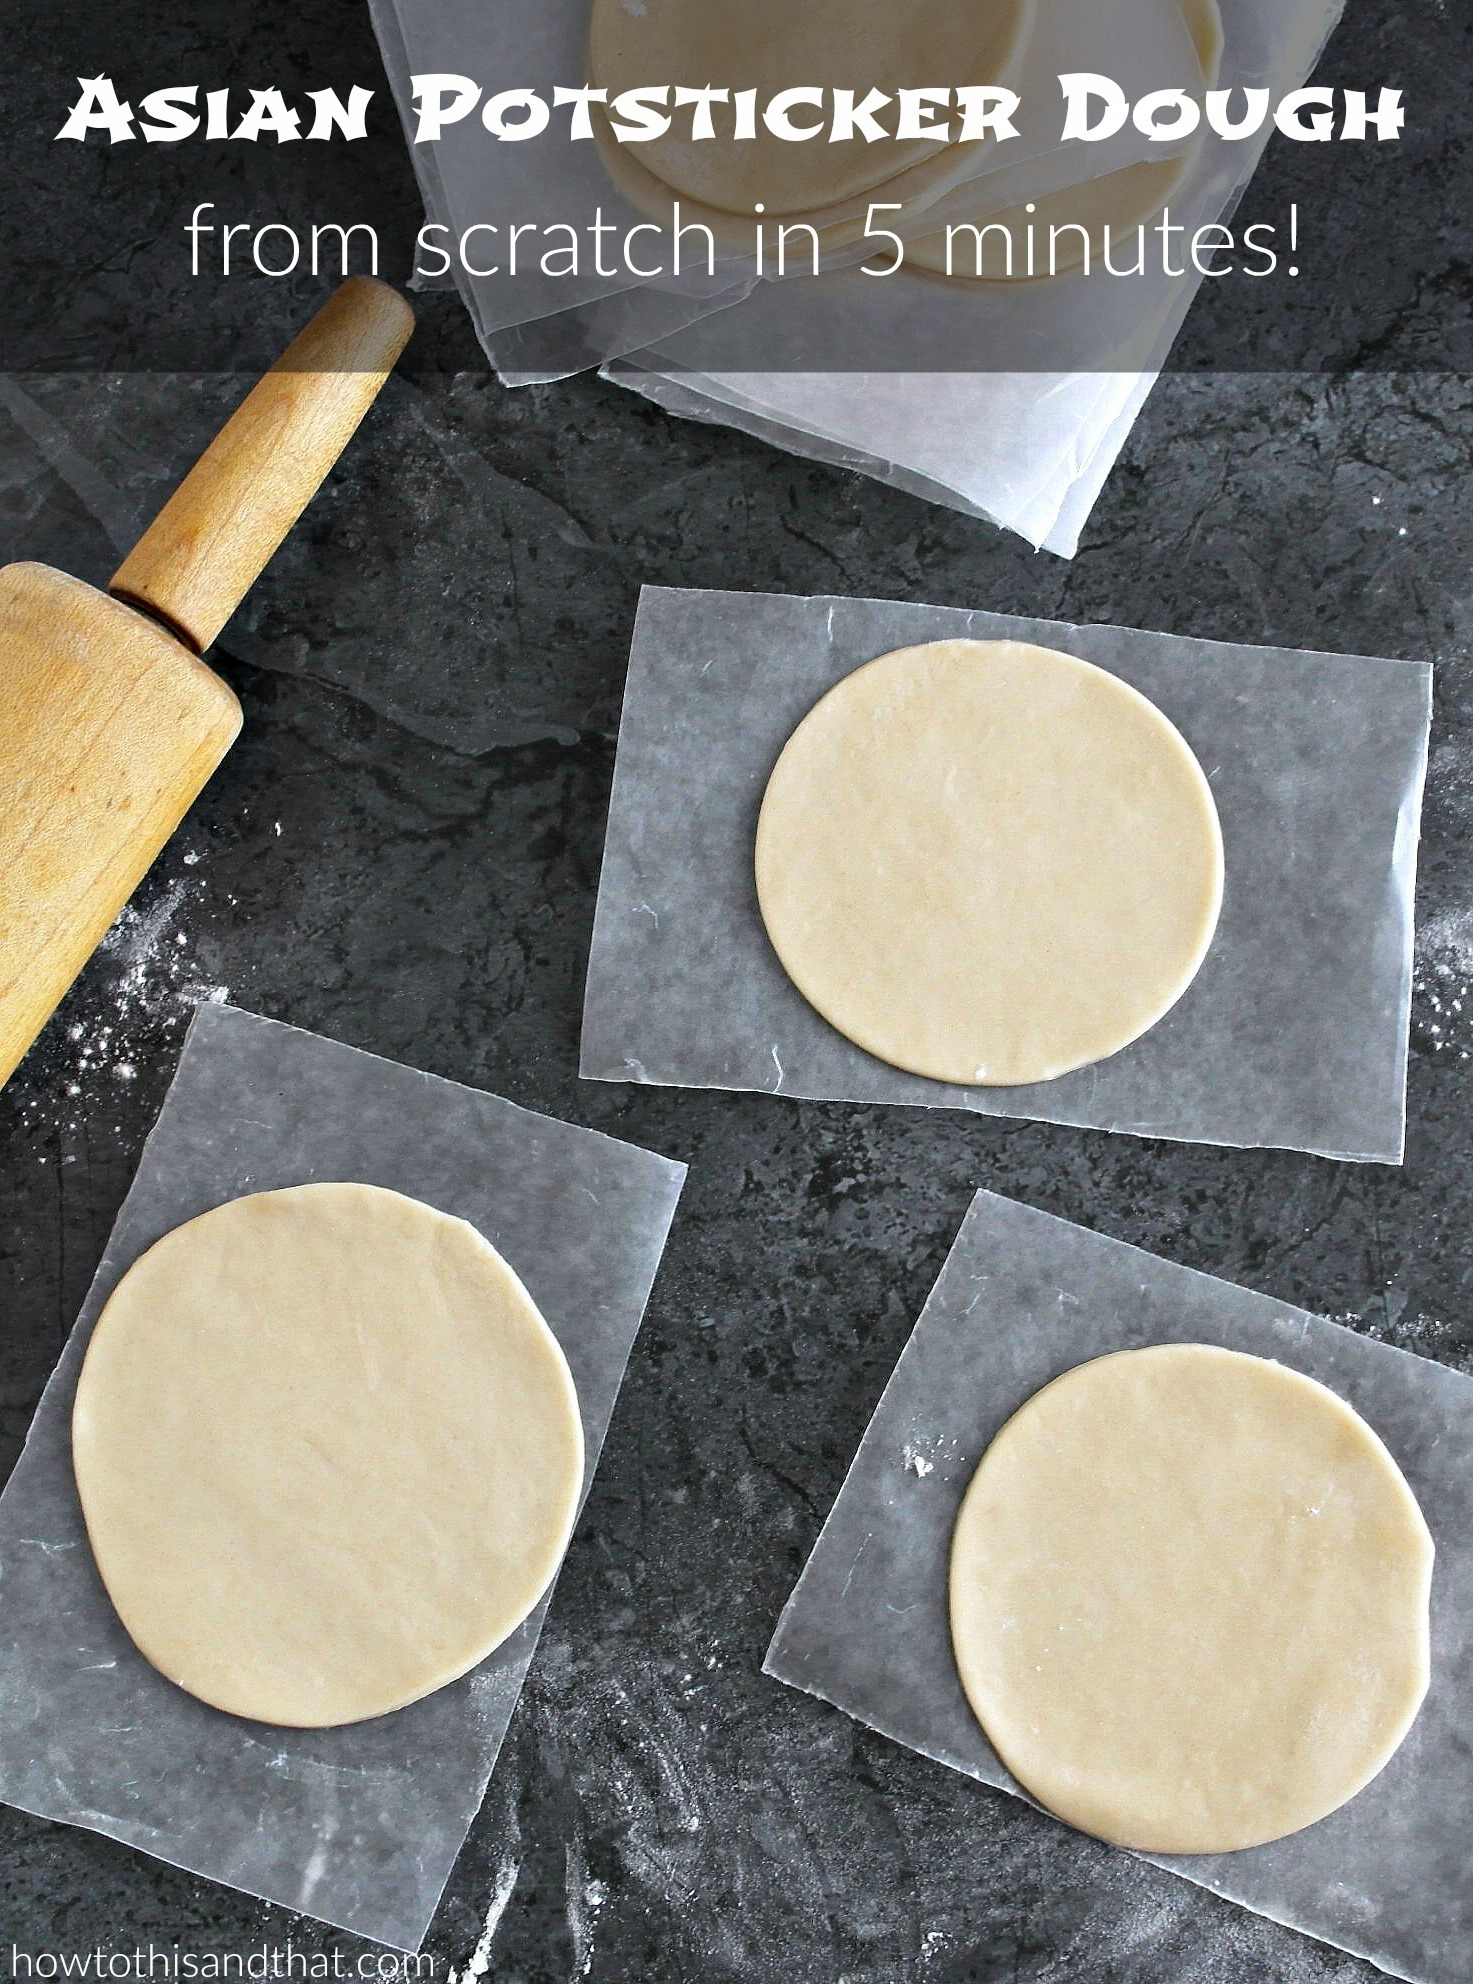 How To Make Amazing Asian Potsticker Dough in 5 Minutes